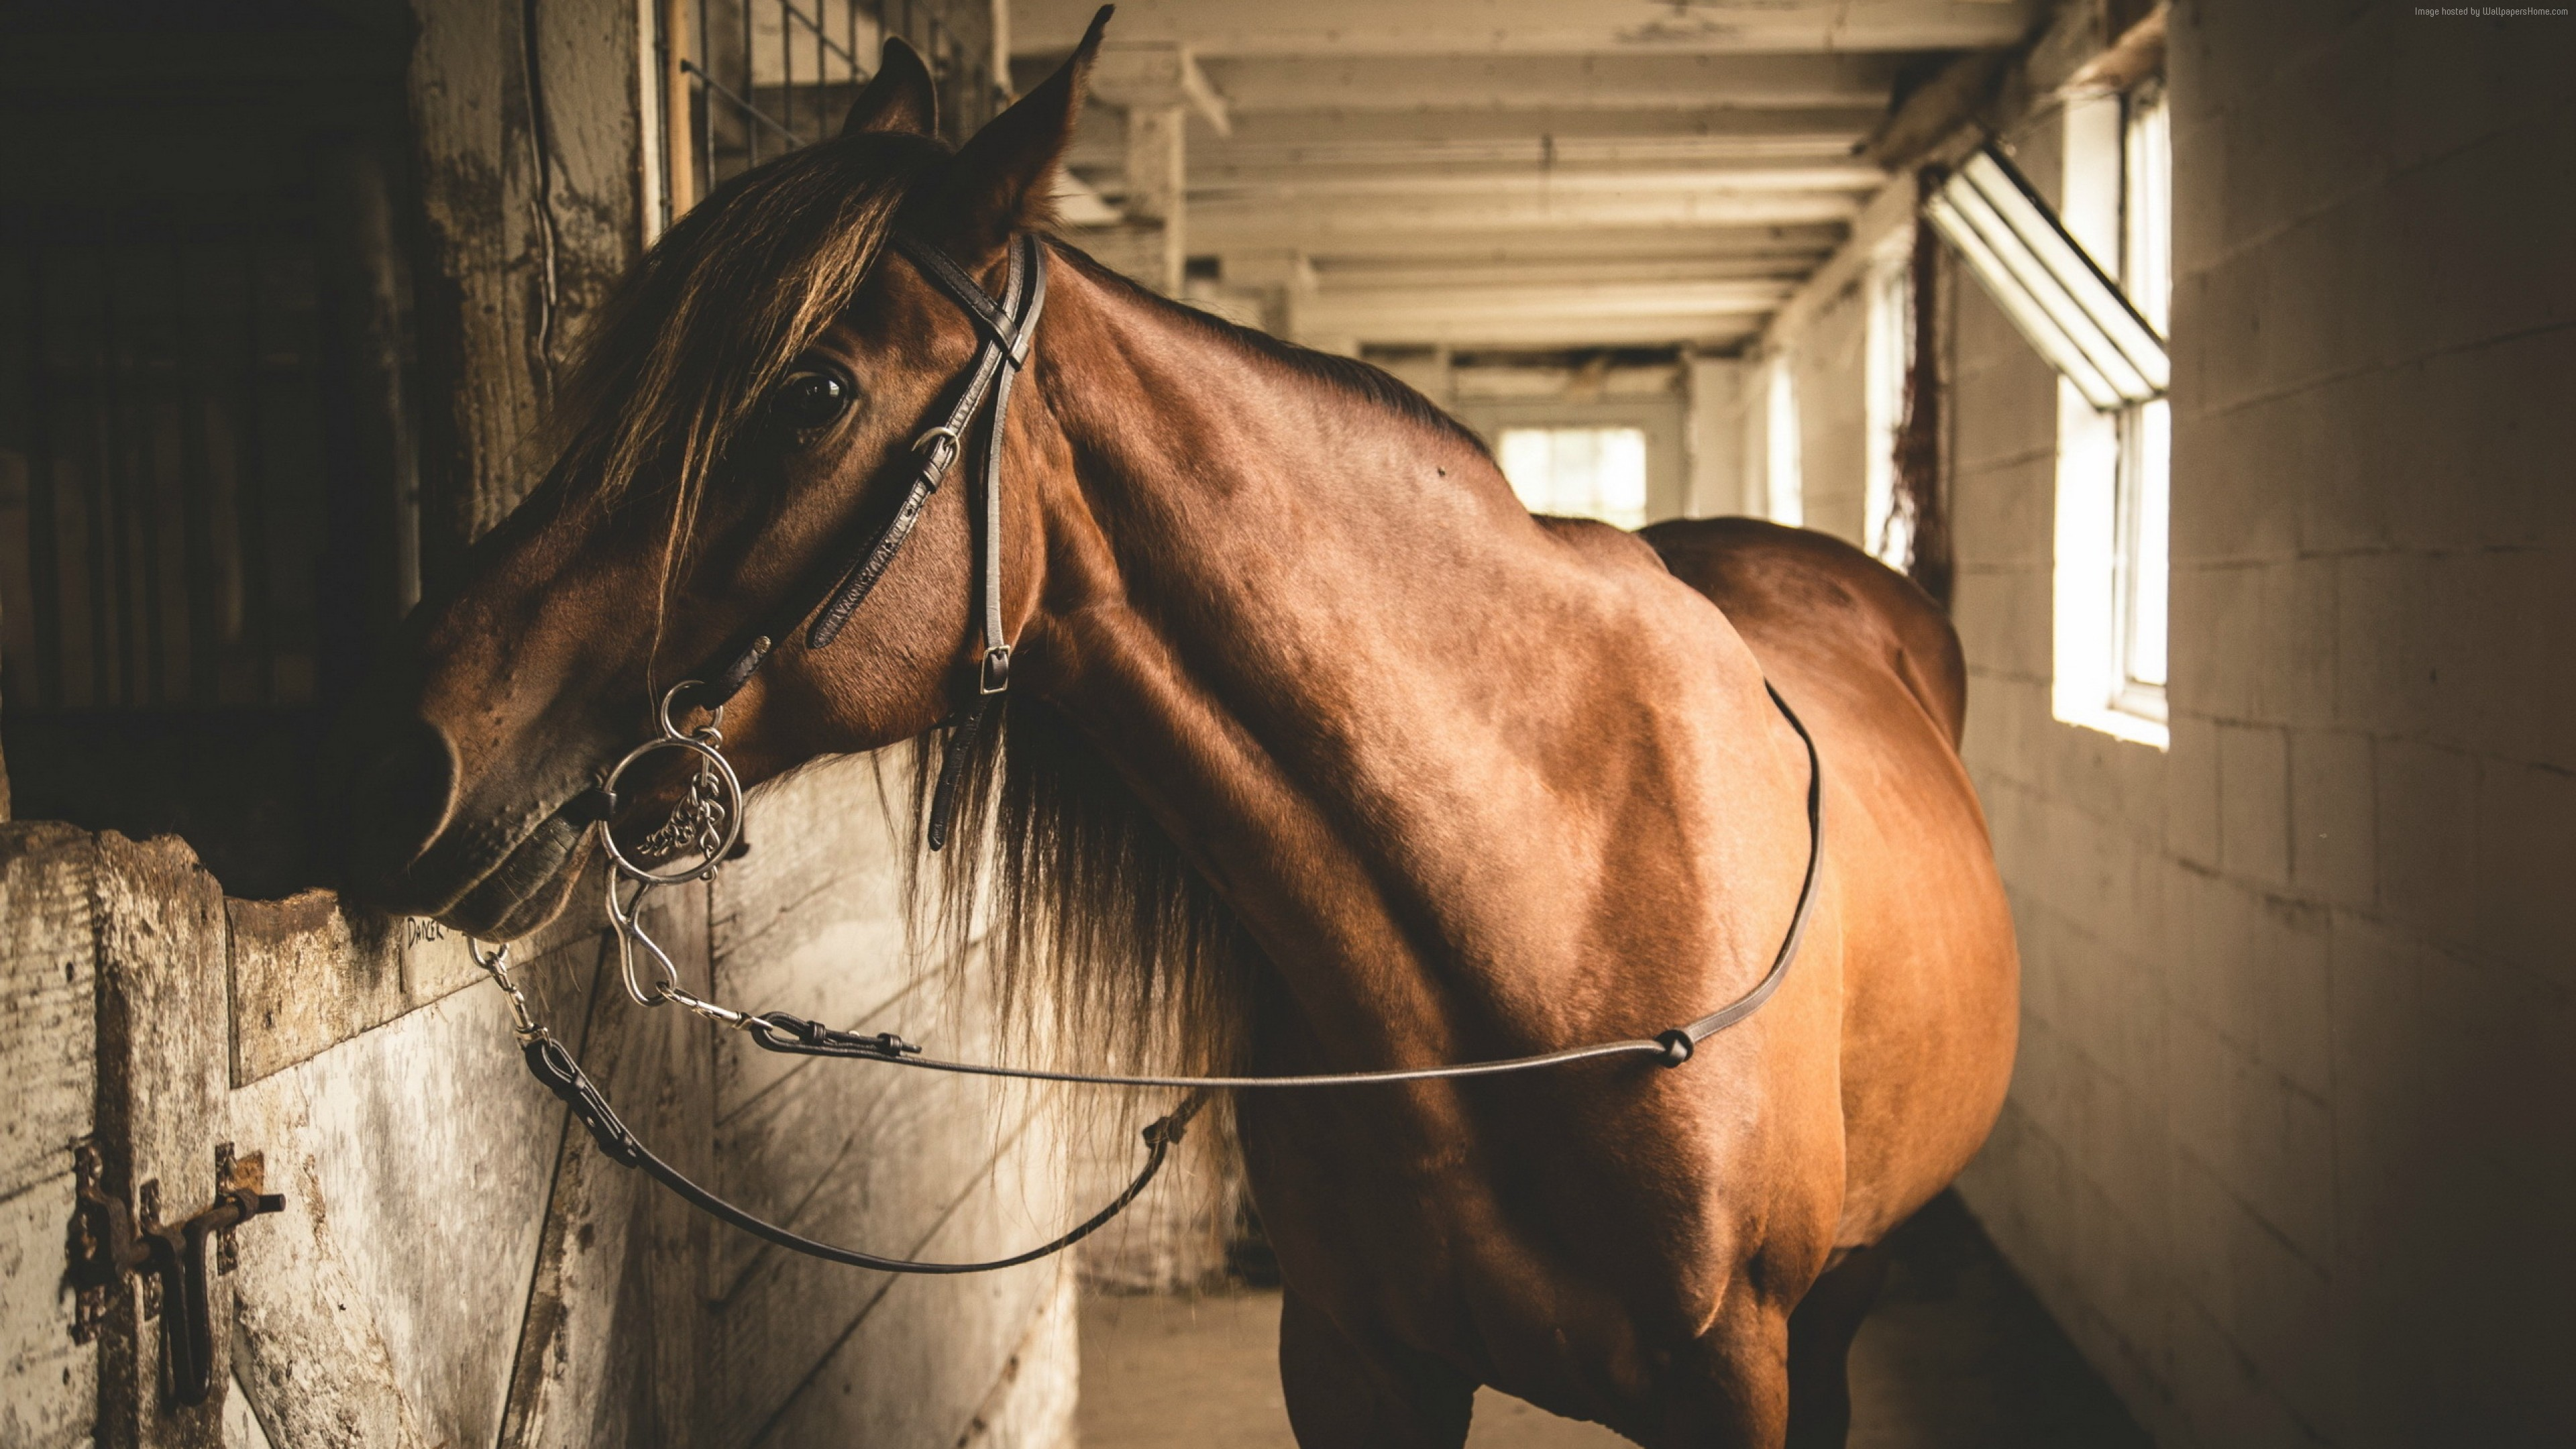 Wallpaper Horse, stable, brown, cute animals, Animals